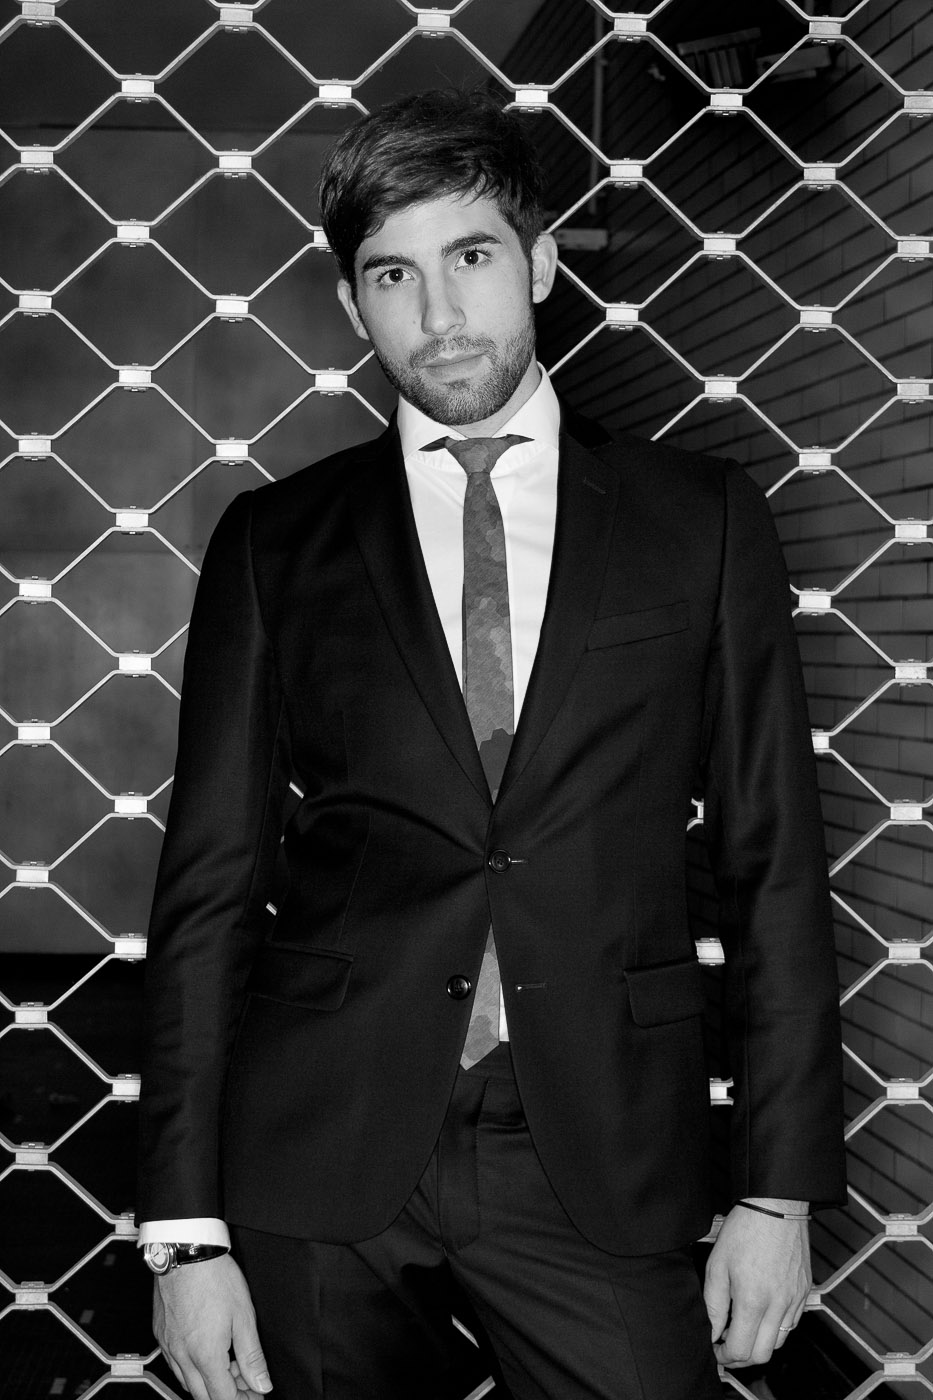 heartthrob male portrait night bw